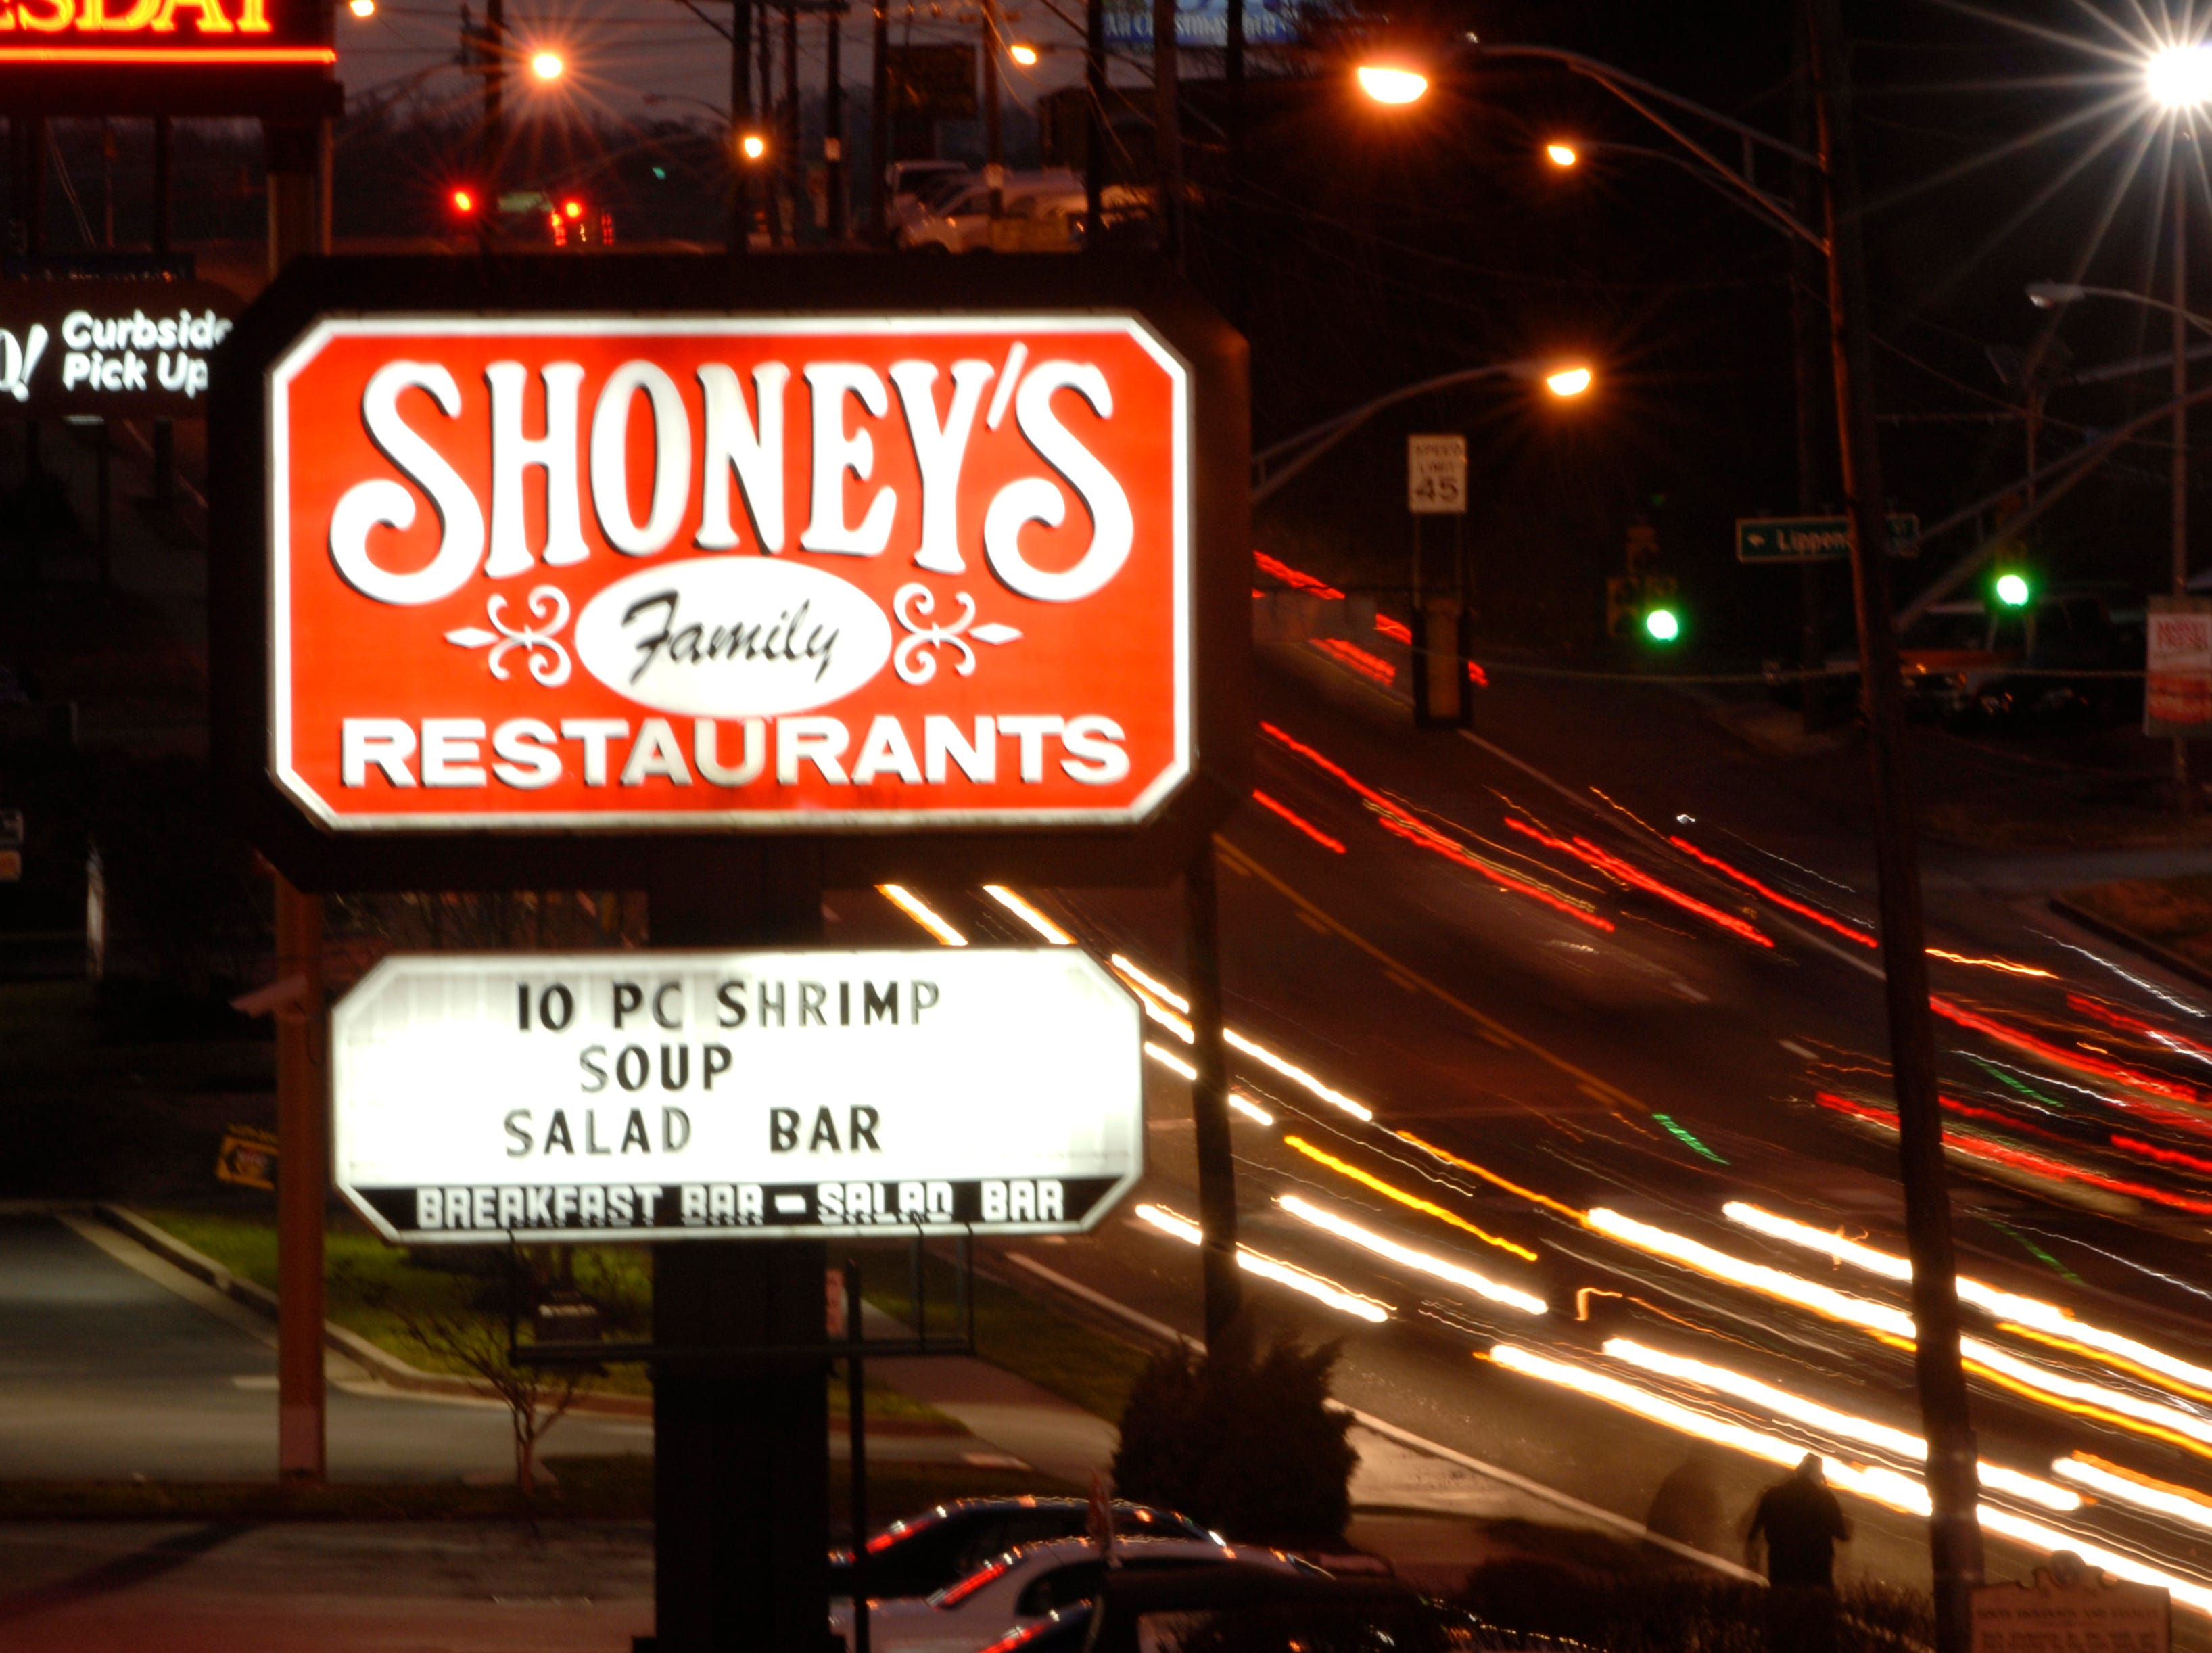 Business continues as usual at Shoney's on Chapman Highway, Tuesday, after it was announced that Royal Hospitality Corp., which operates Church's Chicken restaurants, is acquiring Shoney's Restaurants. The Atlanta-based company will take over all 282 Shoney's restaurants from Shoney's LLC, but the restaurants will continue under the name Shoney's. 1/2007